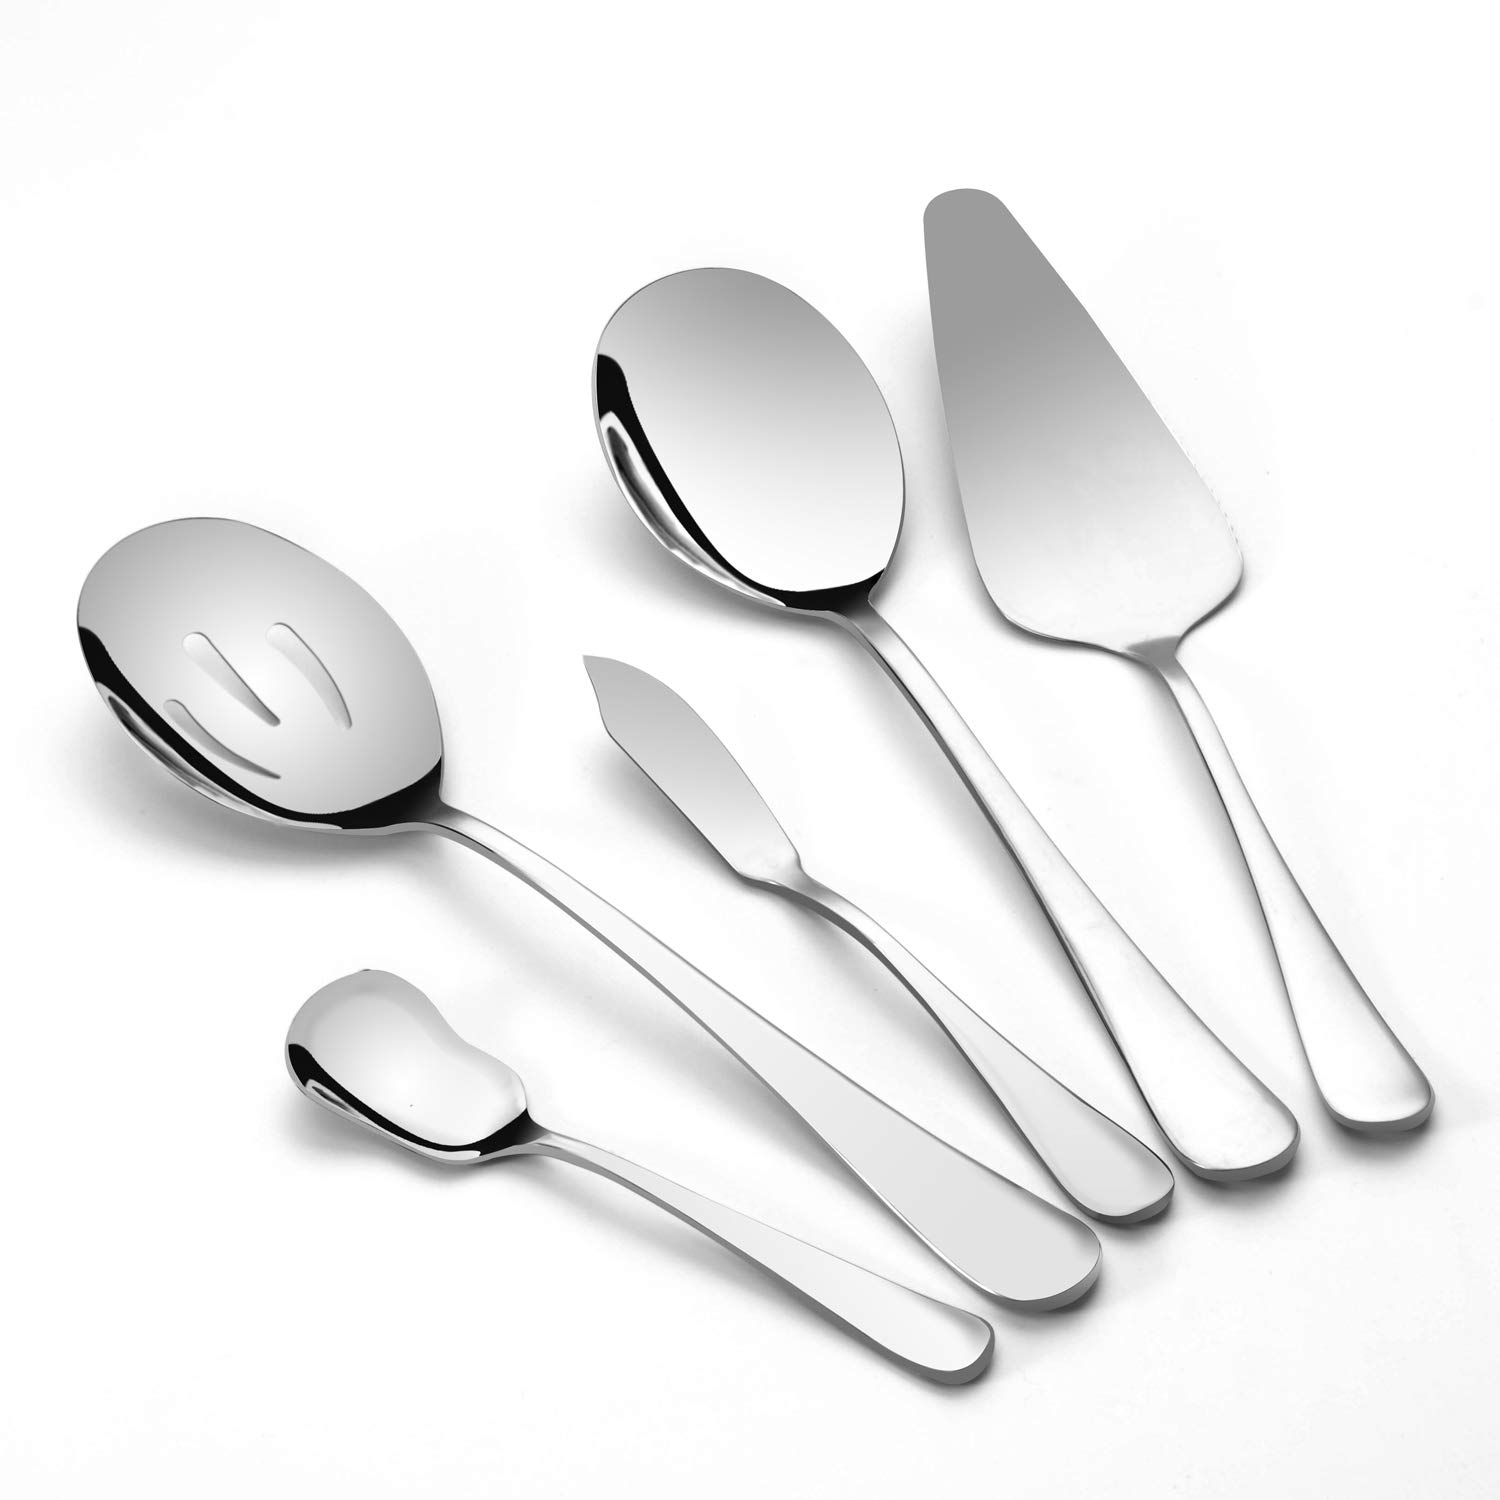 TaNaT Serving Set 5-Piece Stainless Steel Hostess Serving Utensils Set Cutlery Flatware Mini Dessert Server for Home Kitchen,Restaurant and Cafes(Set of 5),Classic Style,Never Rust,with Round Edge,Sil